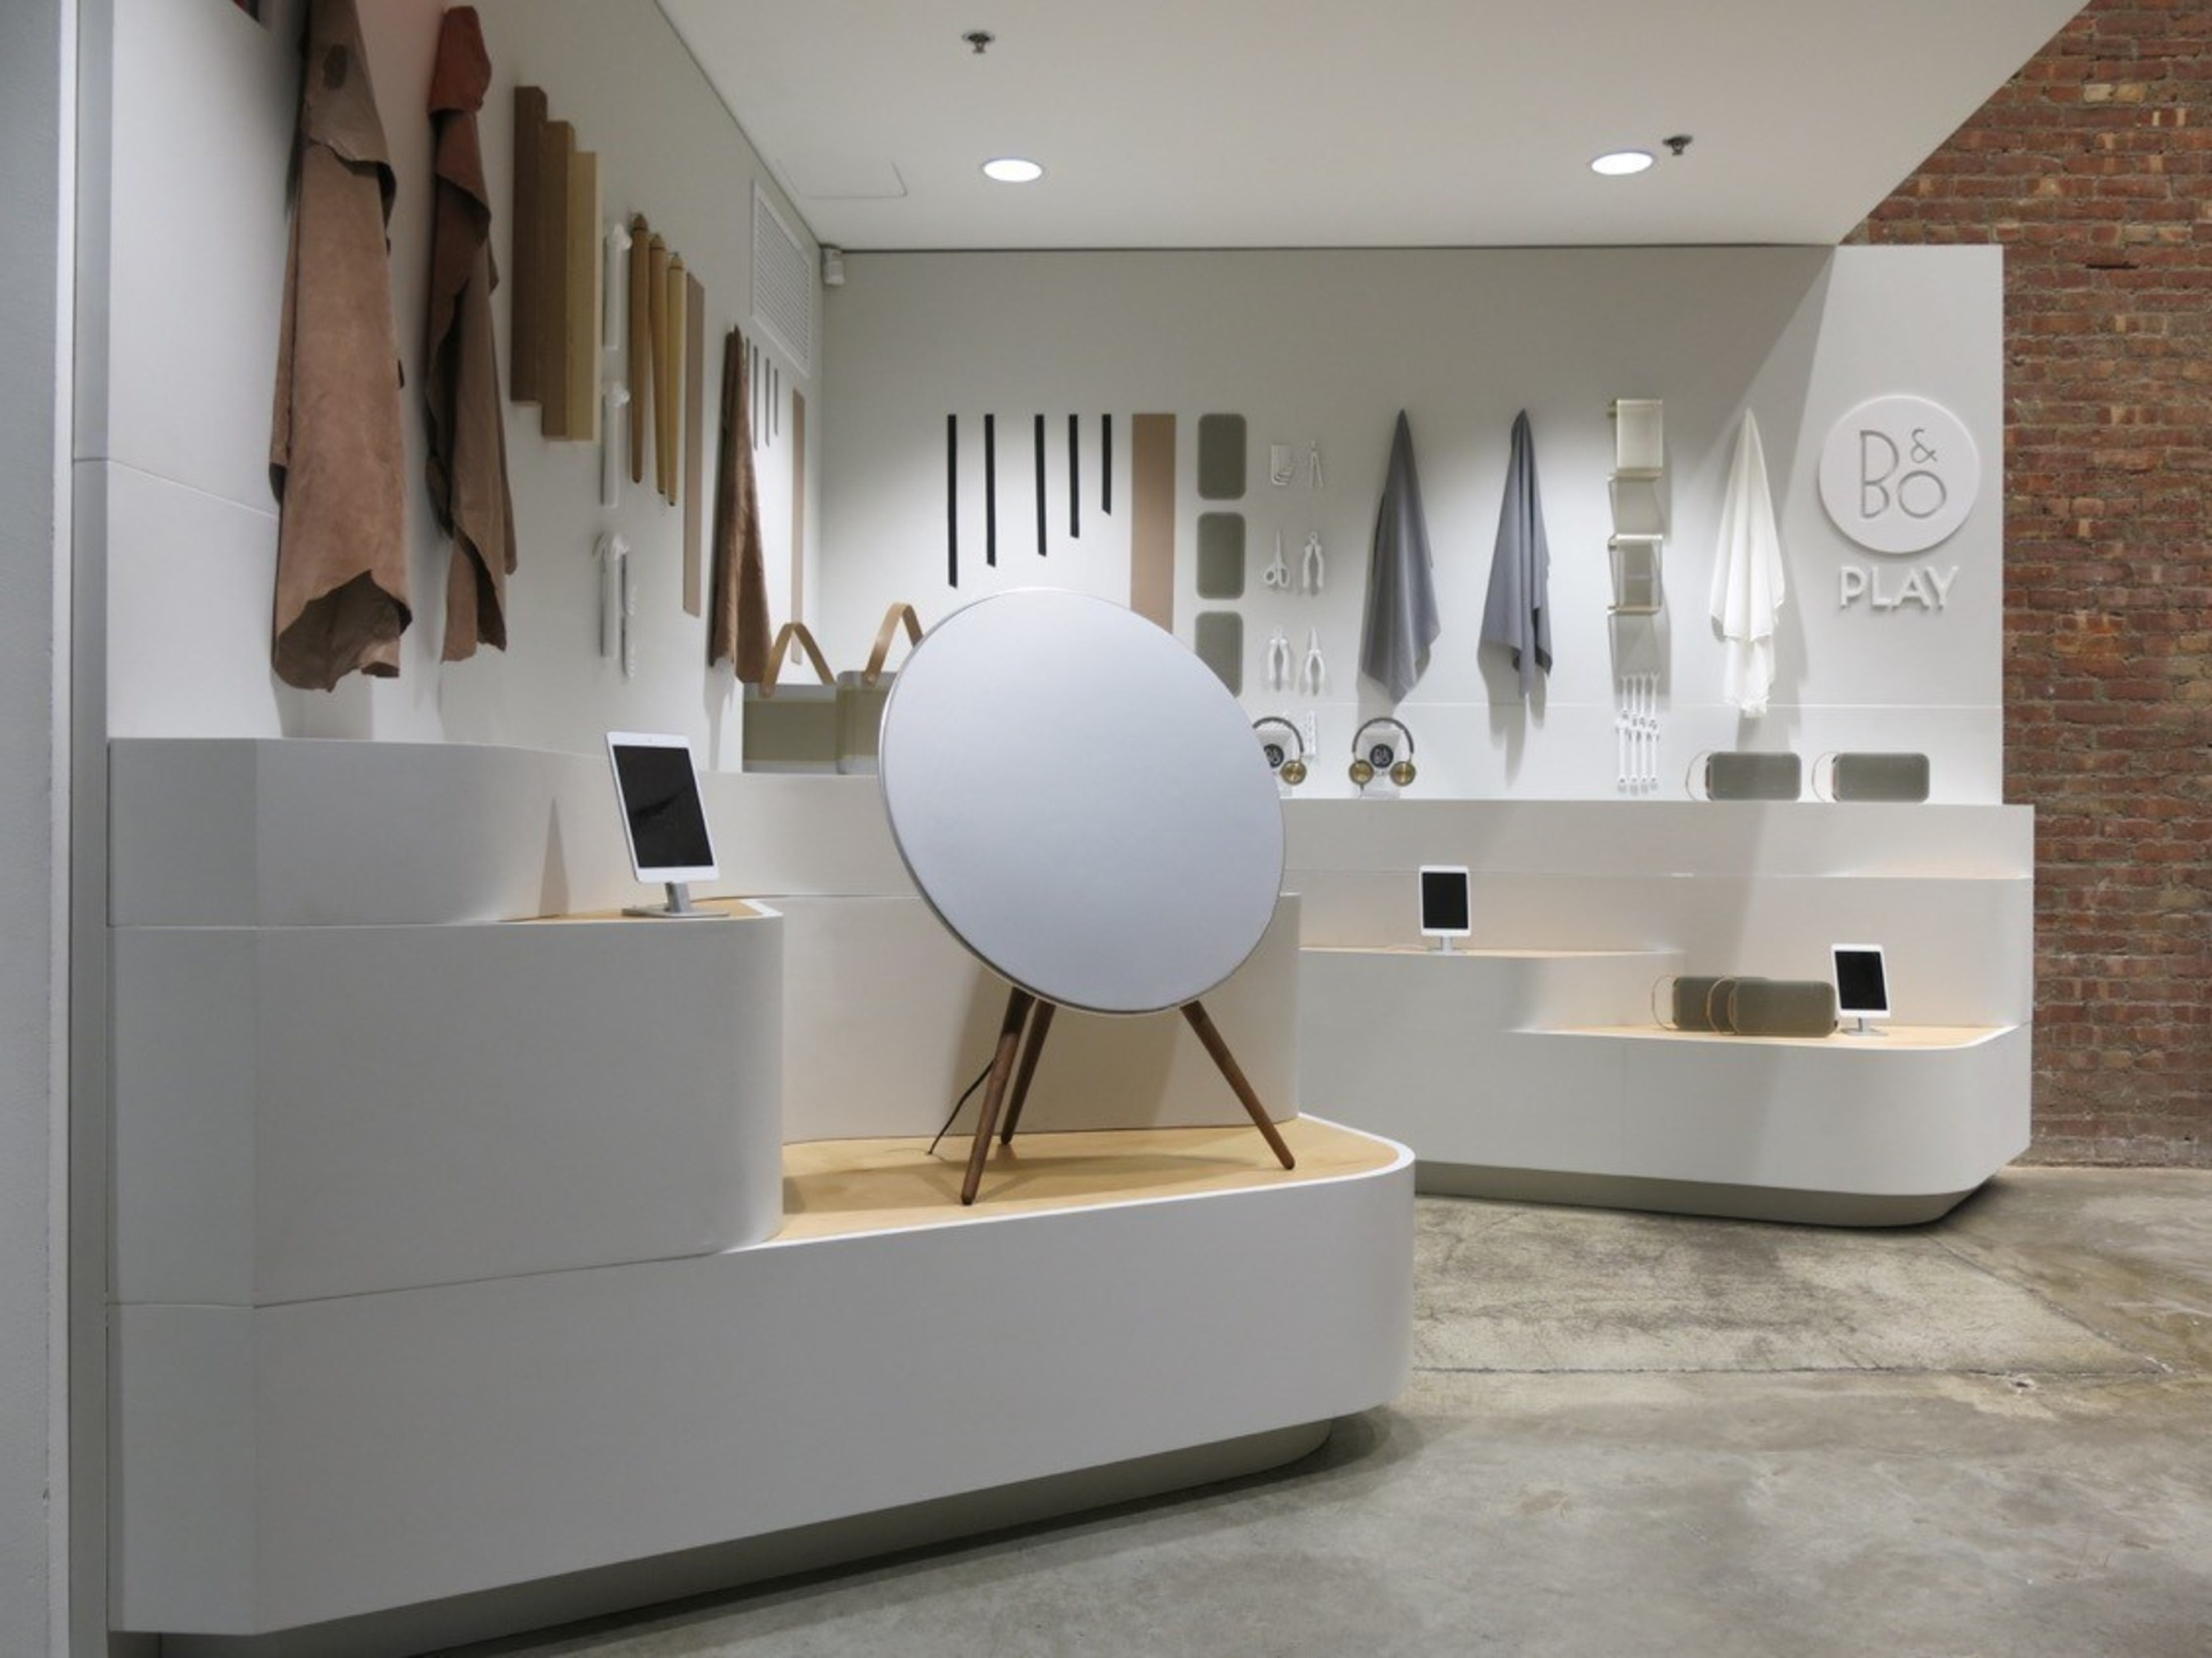 Dover Street Market selects B&O PLAY as first audio company